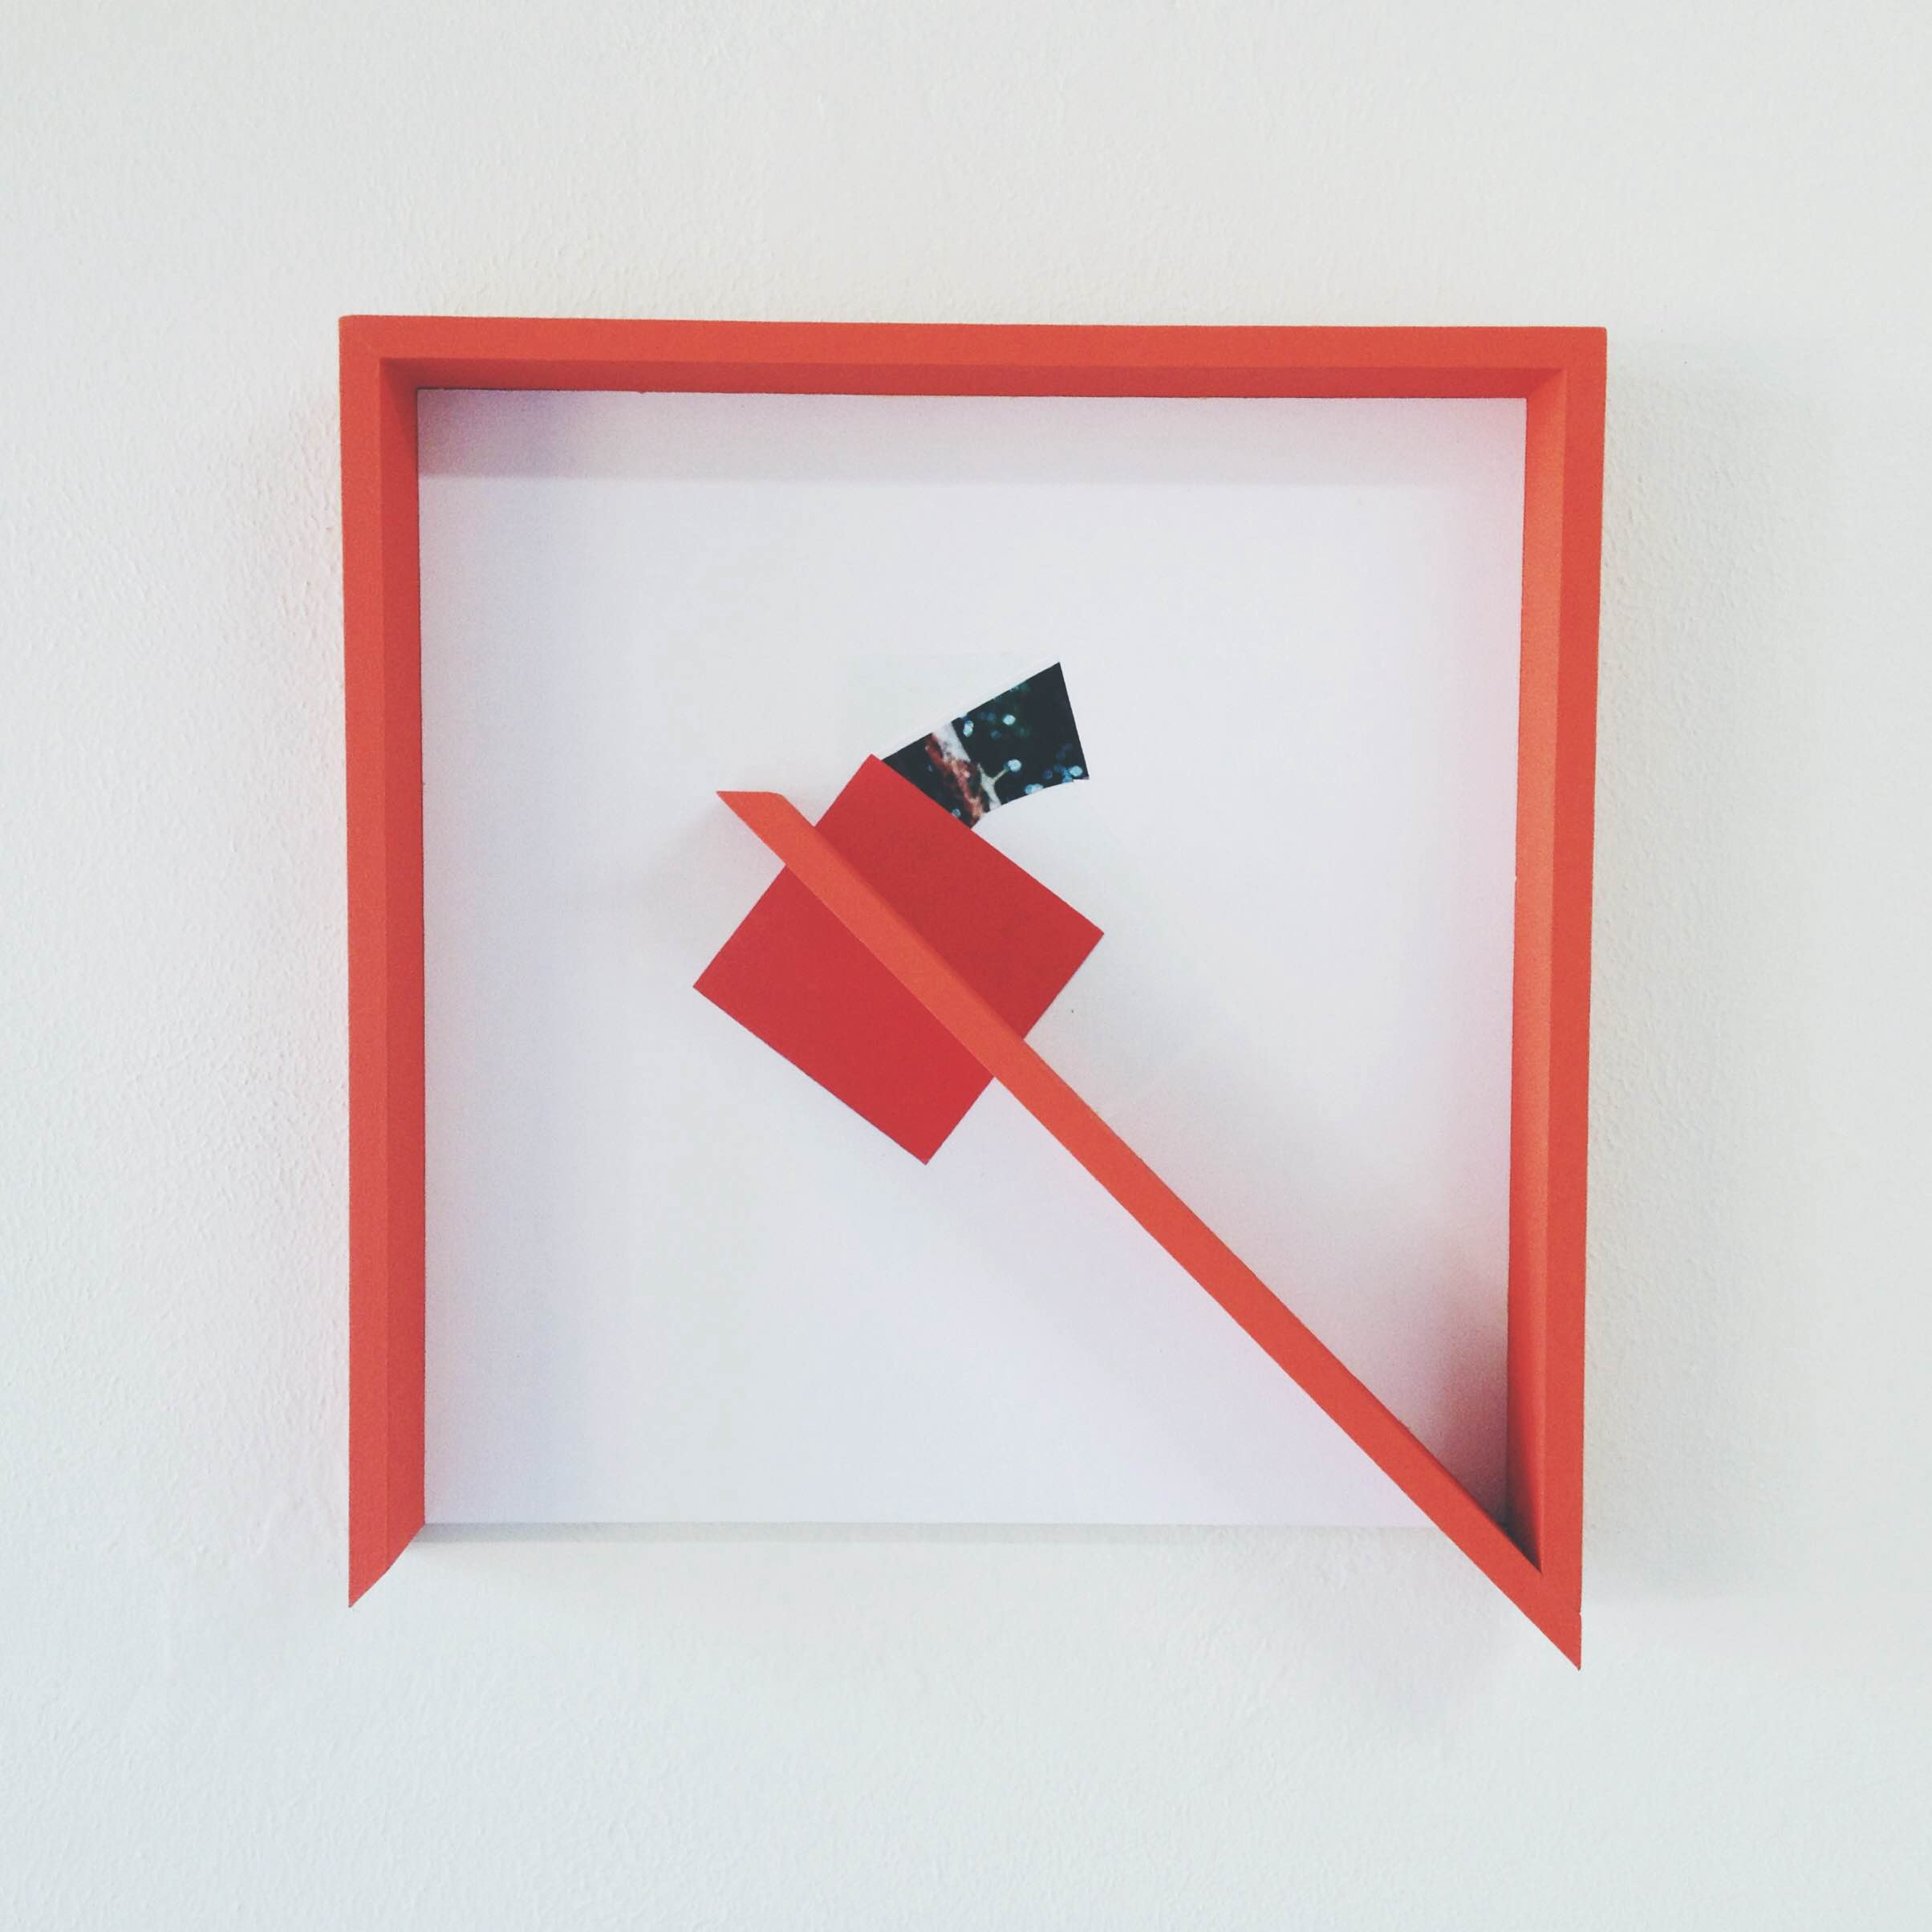 Kate Bonner, At the end points, Tmoro projects, Subject to change